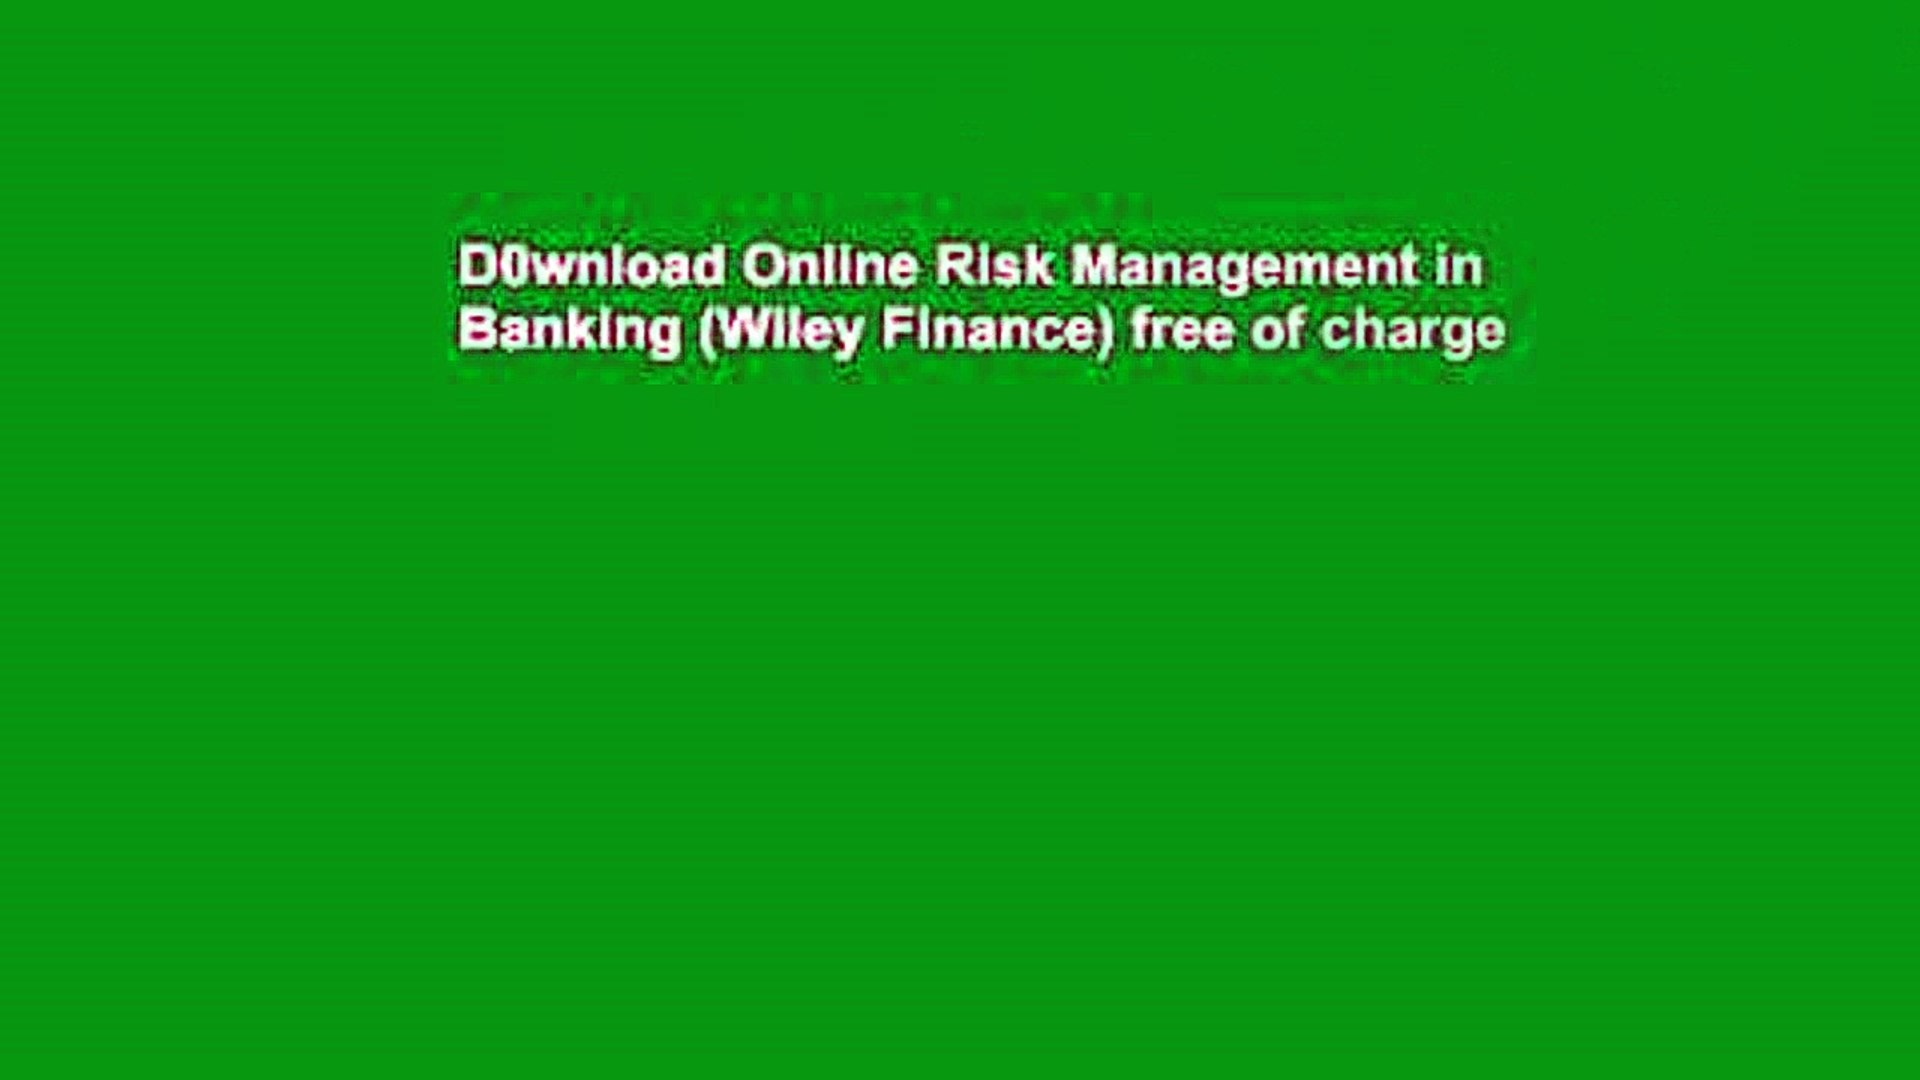 D0wnload Online Risk Management in Banking (Wiley Finance) free of charge